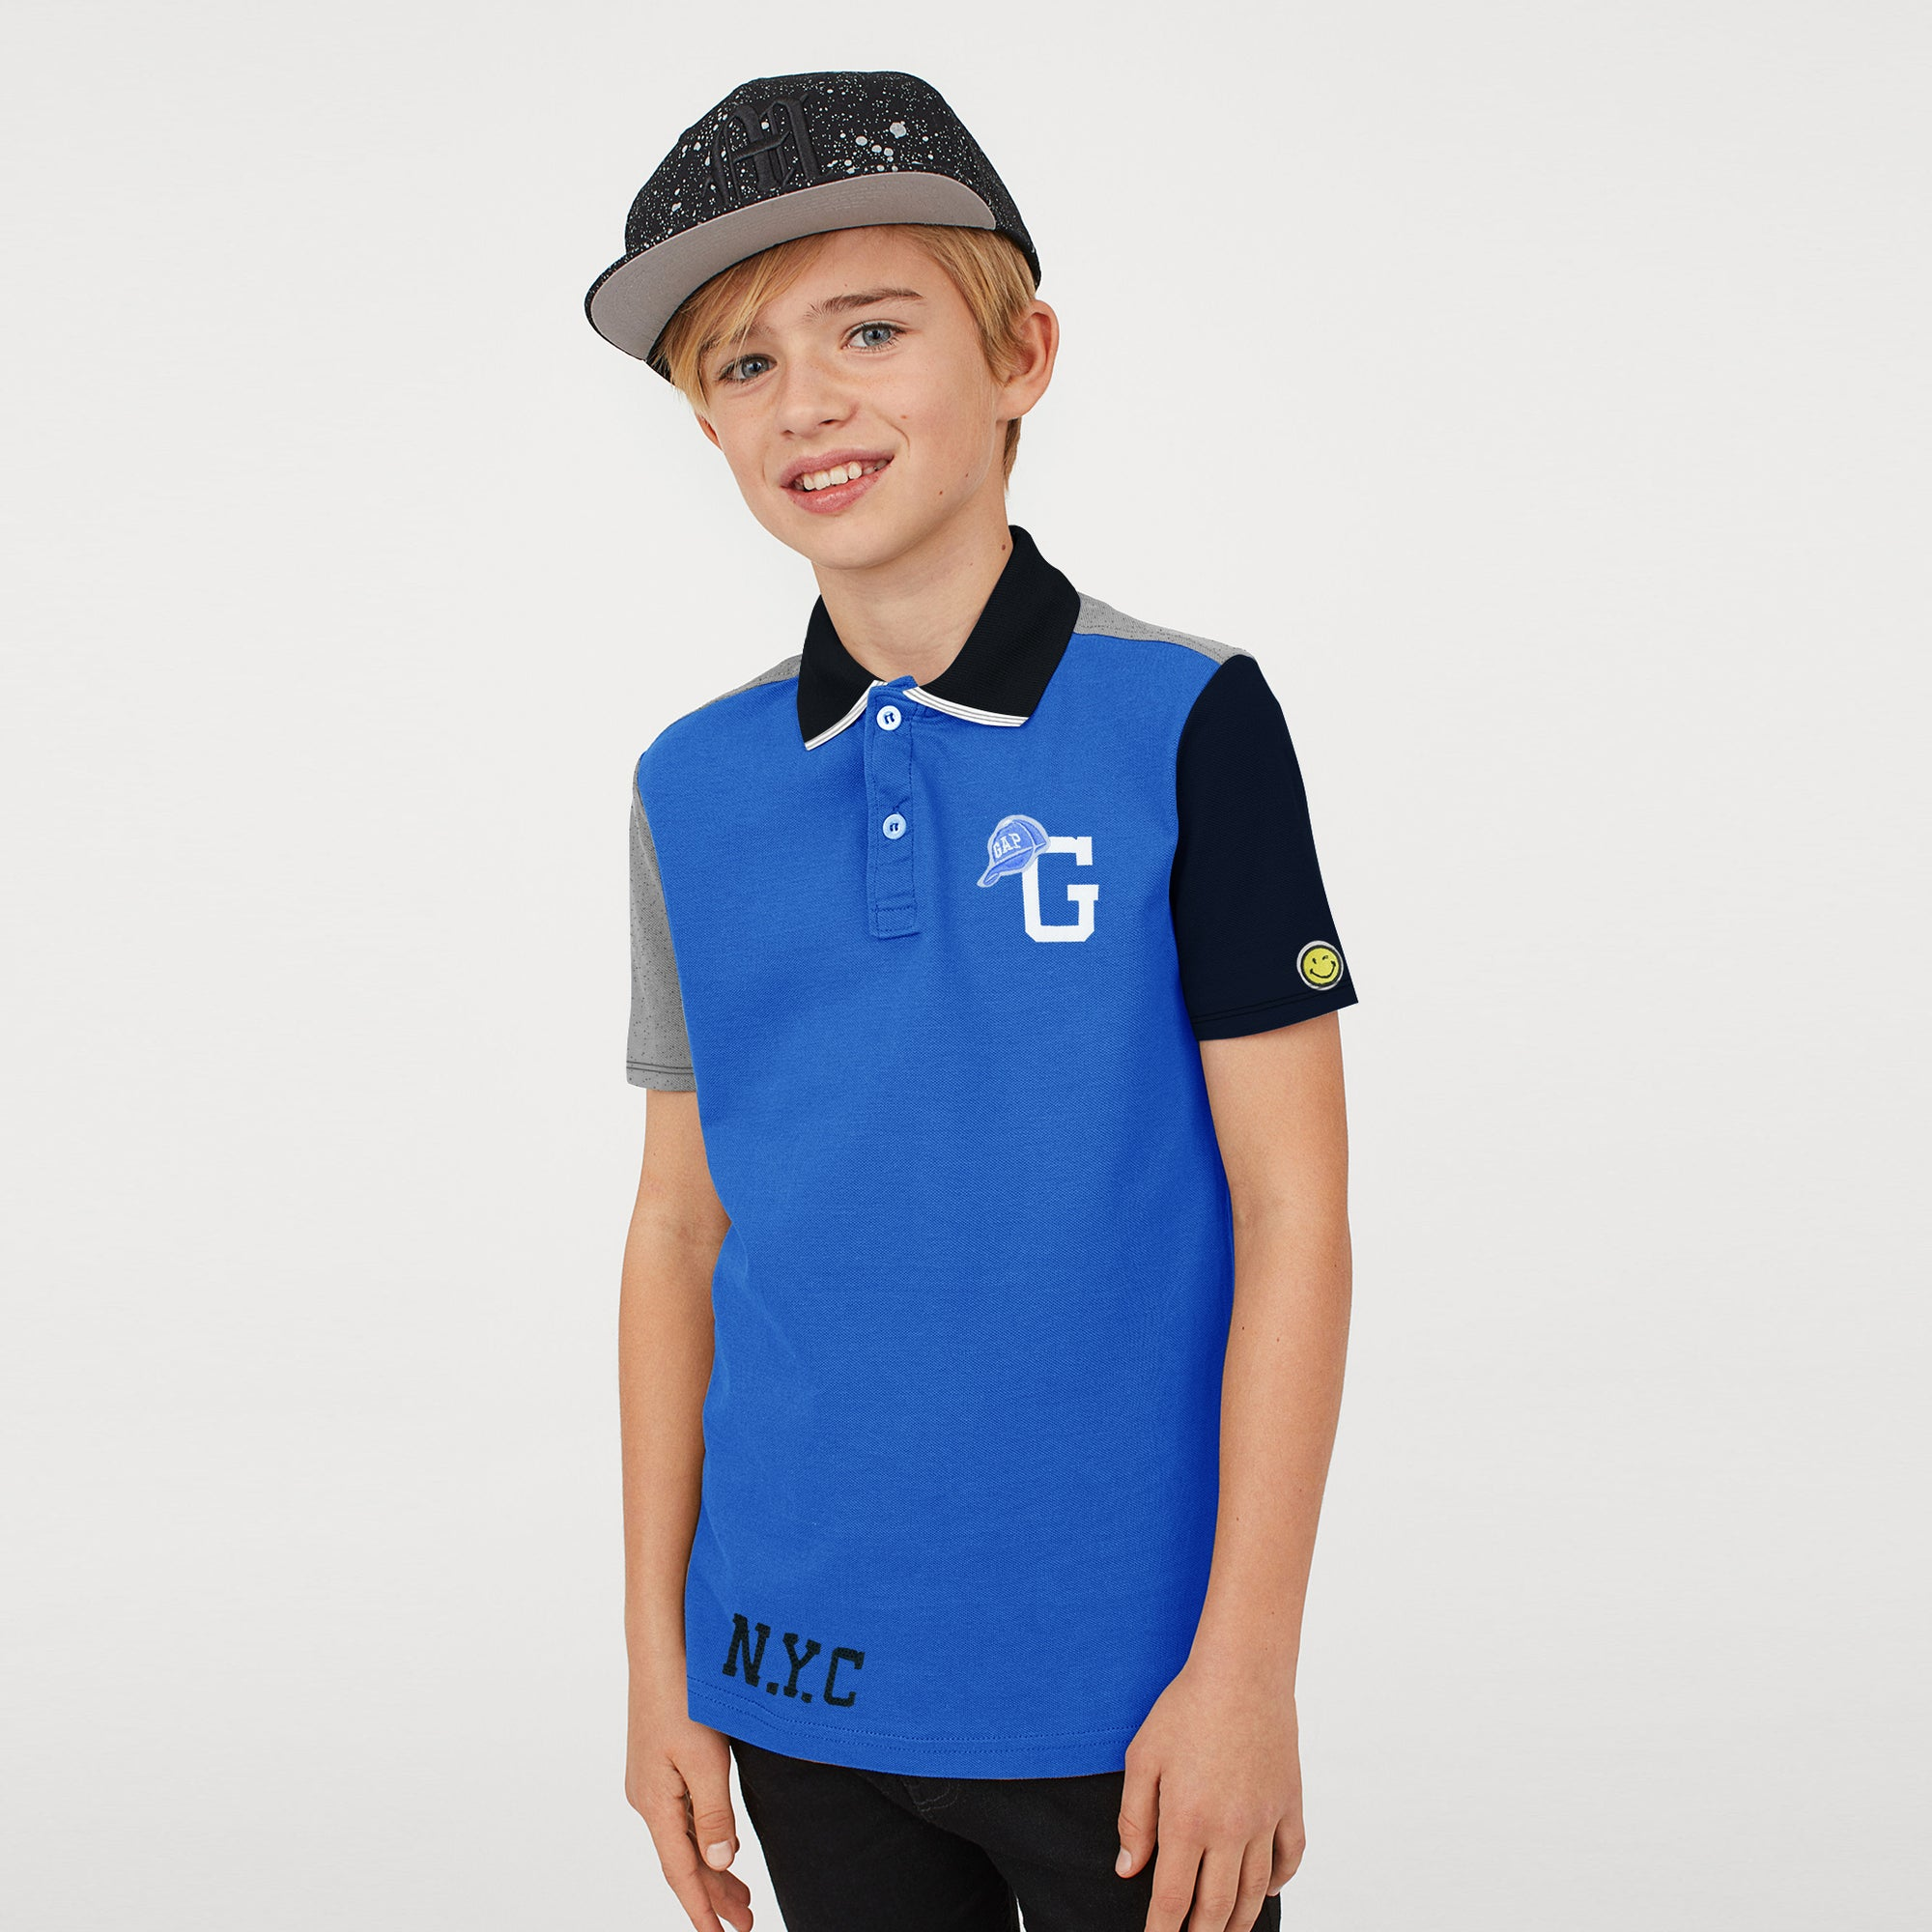 brandsego - GAP Half Sleeve P.Q Polo Shirt For Kids-BE8499